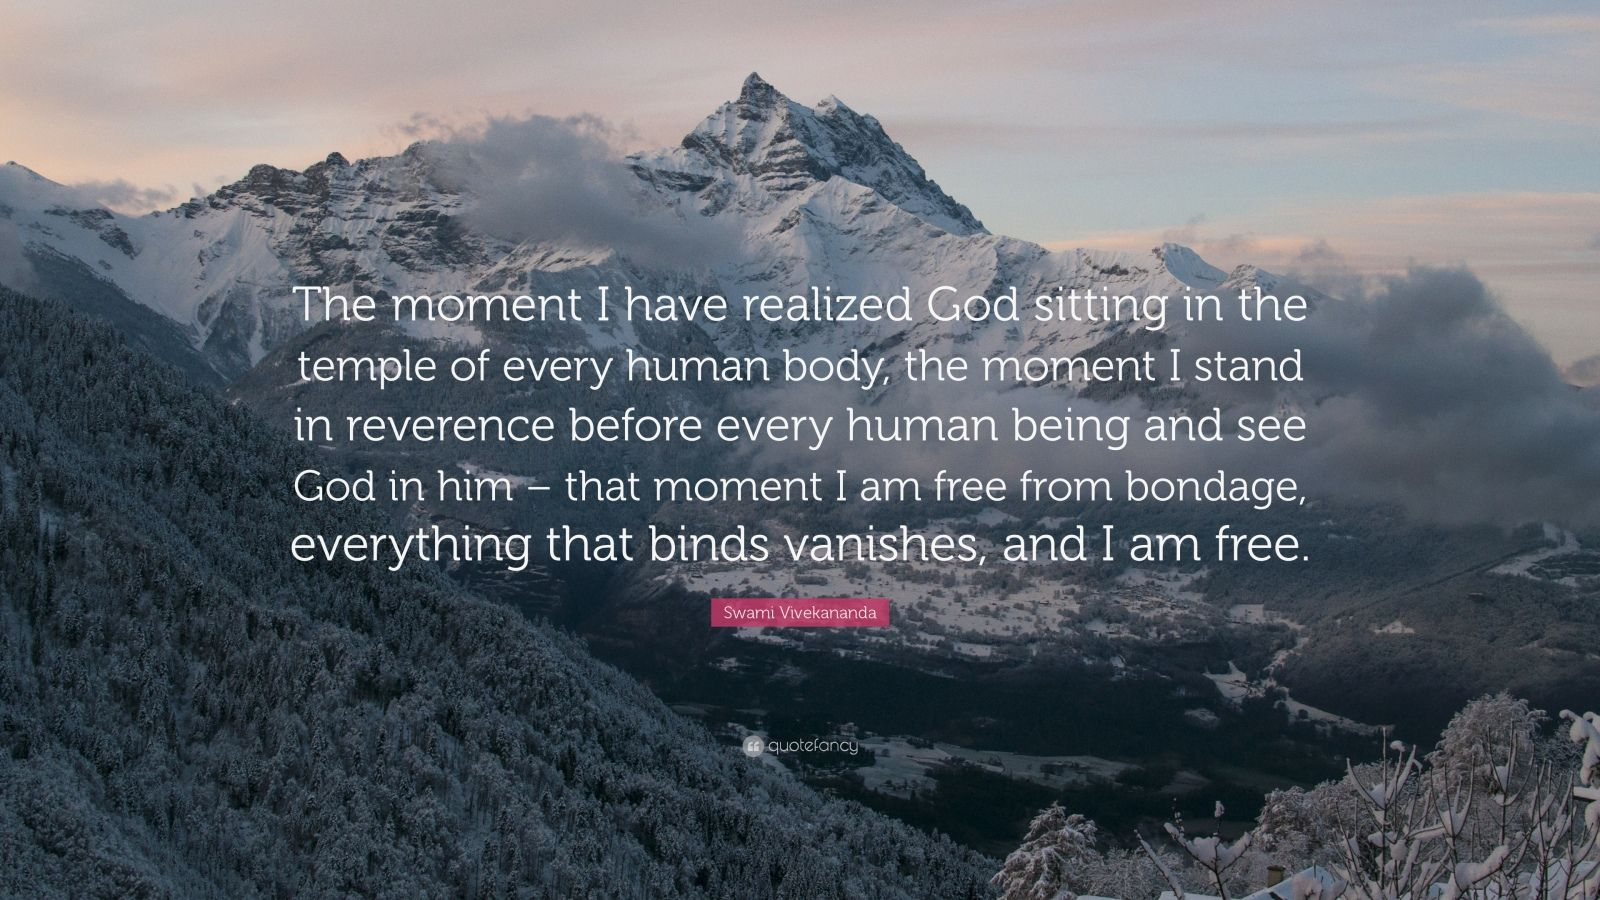 "Swami Vivekananda Quote: ""The moment I have realized God sitting in the temple of every human body, the moment I stand in reverence before every human being and see God in him – that moment I am free from bondage, everything that binds vanishes, and I am free."""